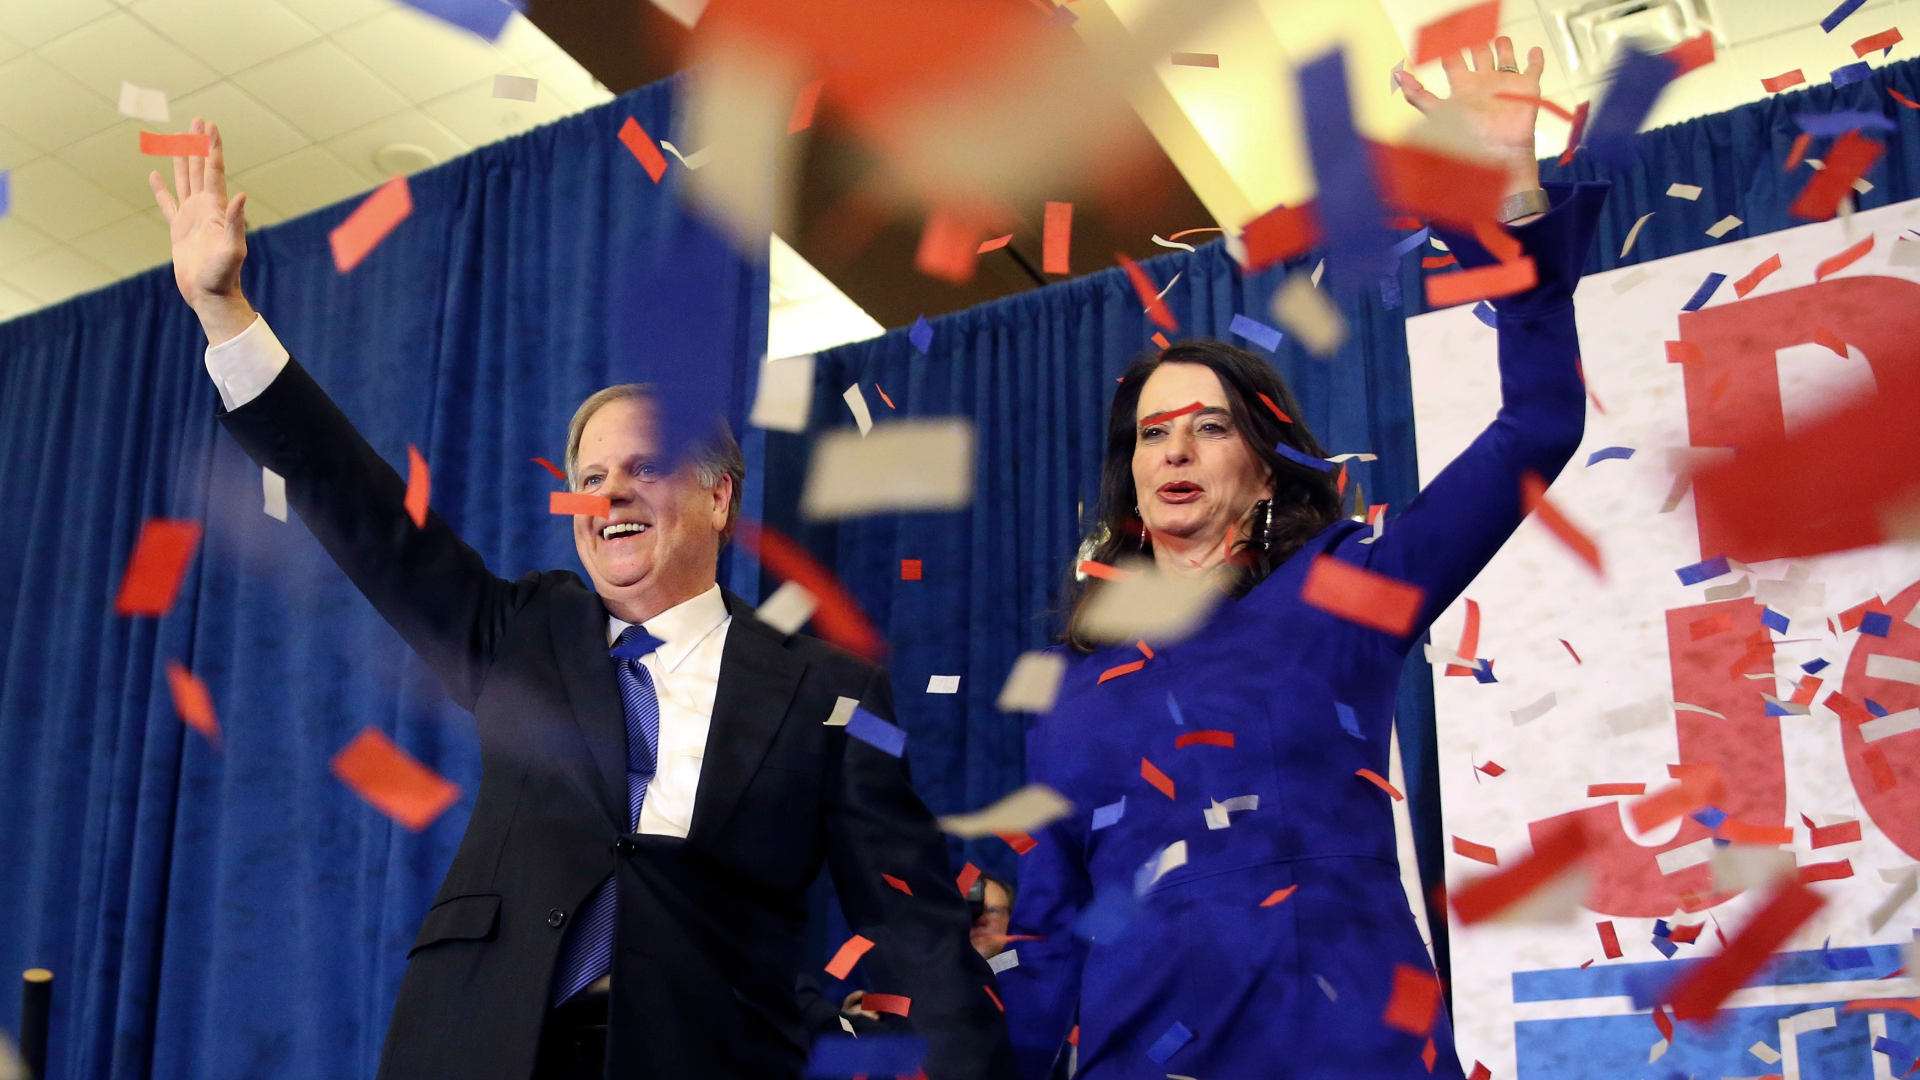 Alabama results remake 2018 election playbook for both parties